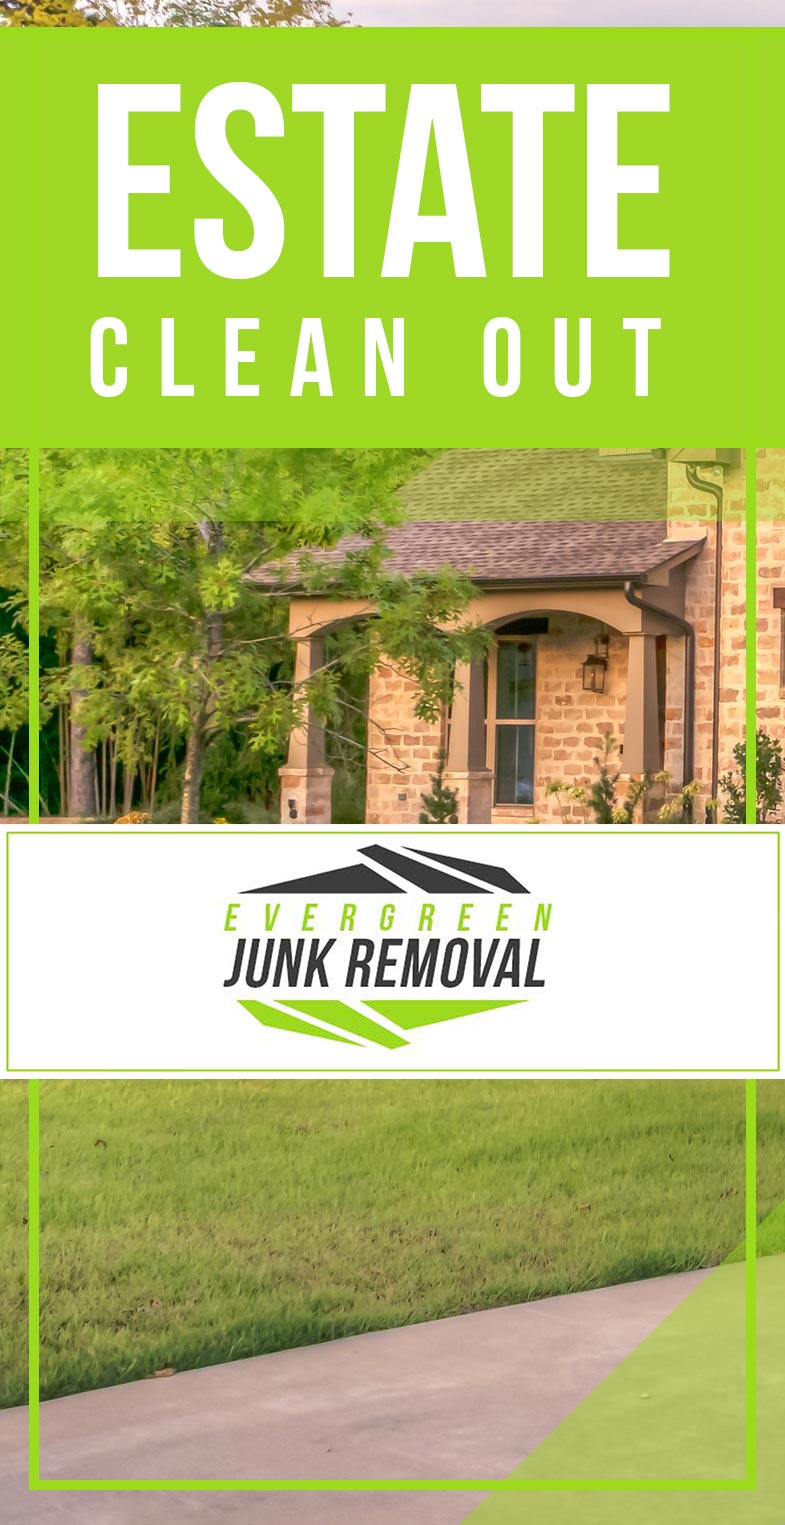 Junk Removal Country Club Estate Clean Out